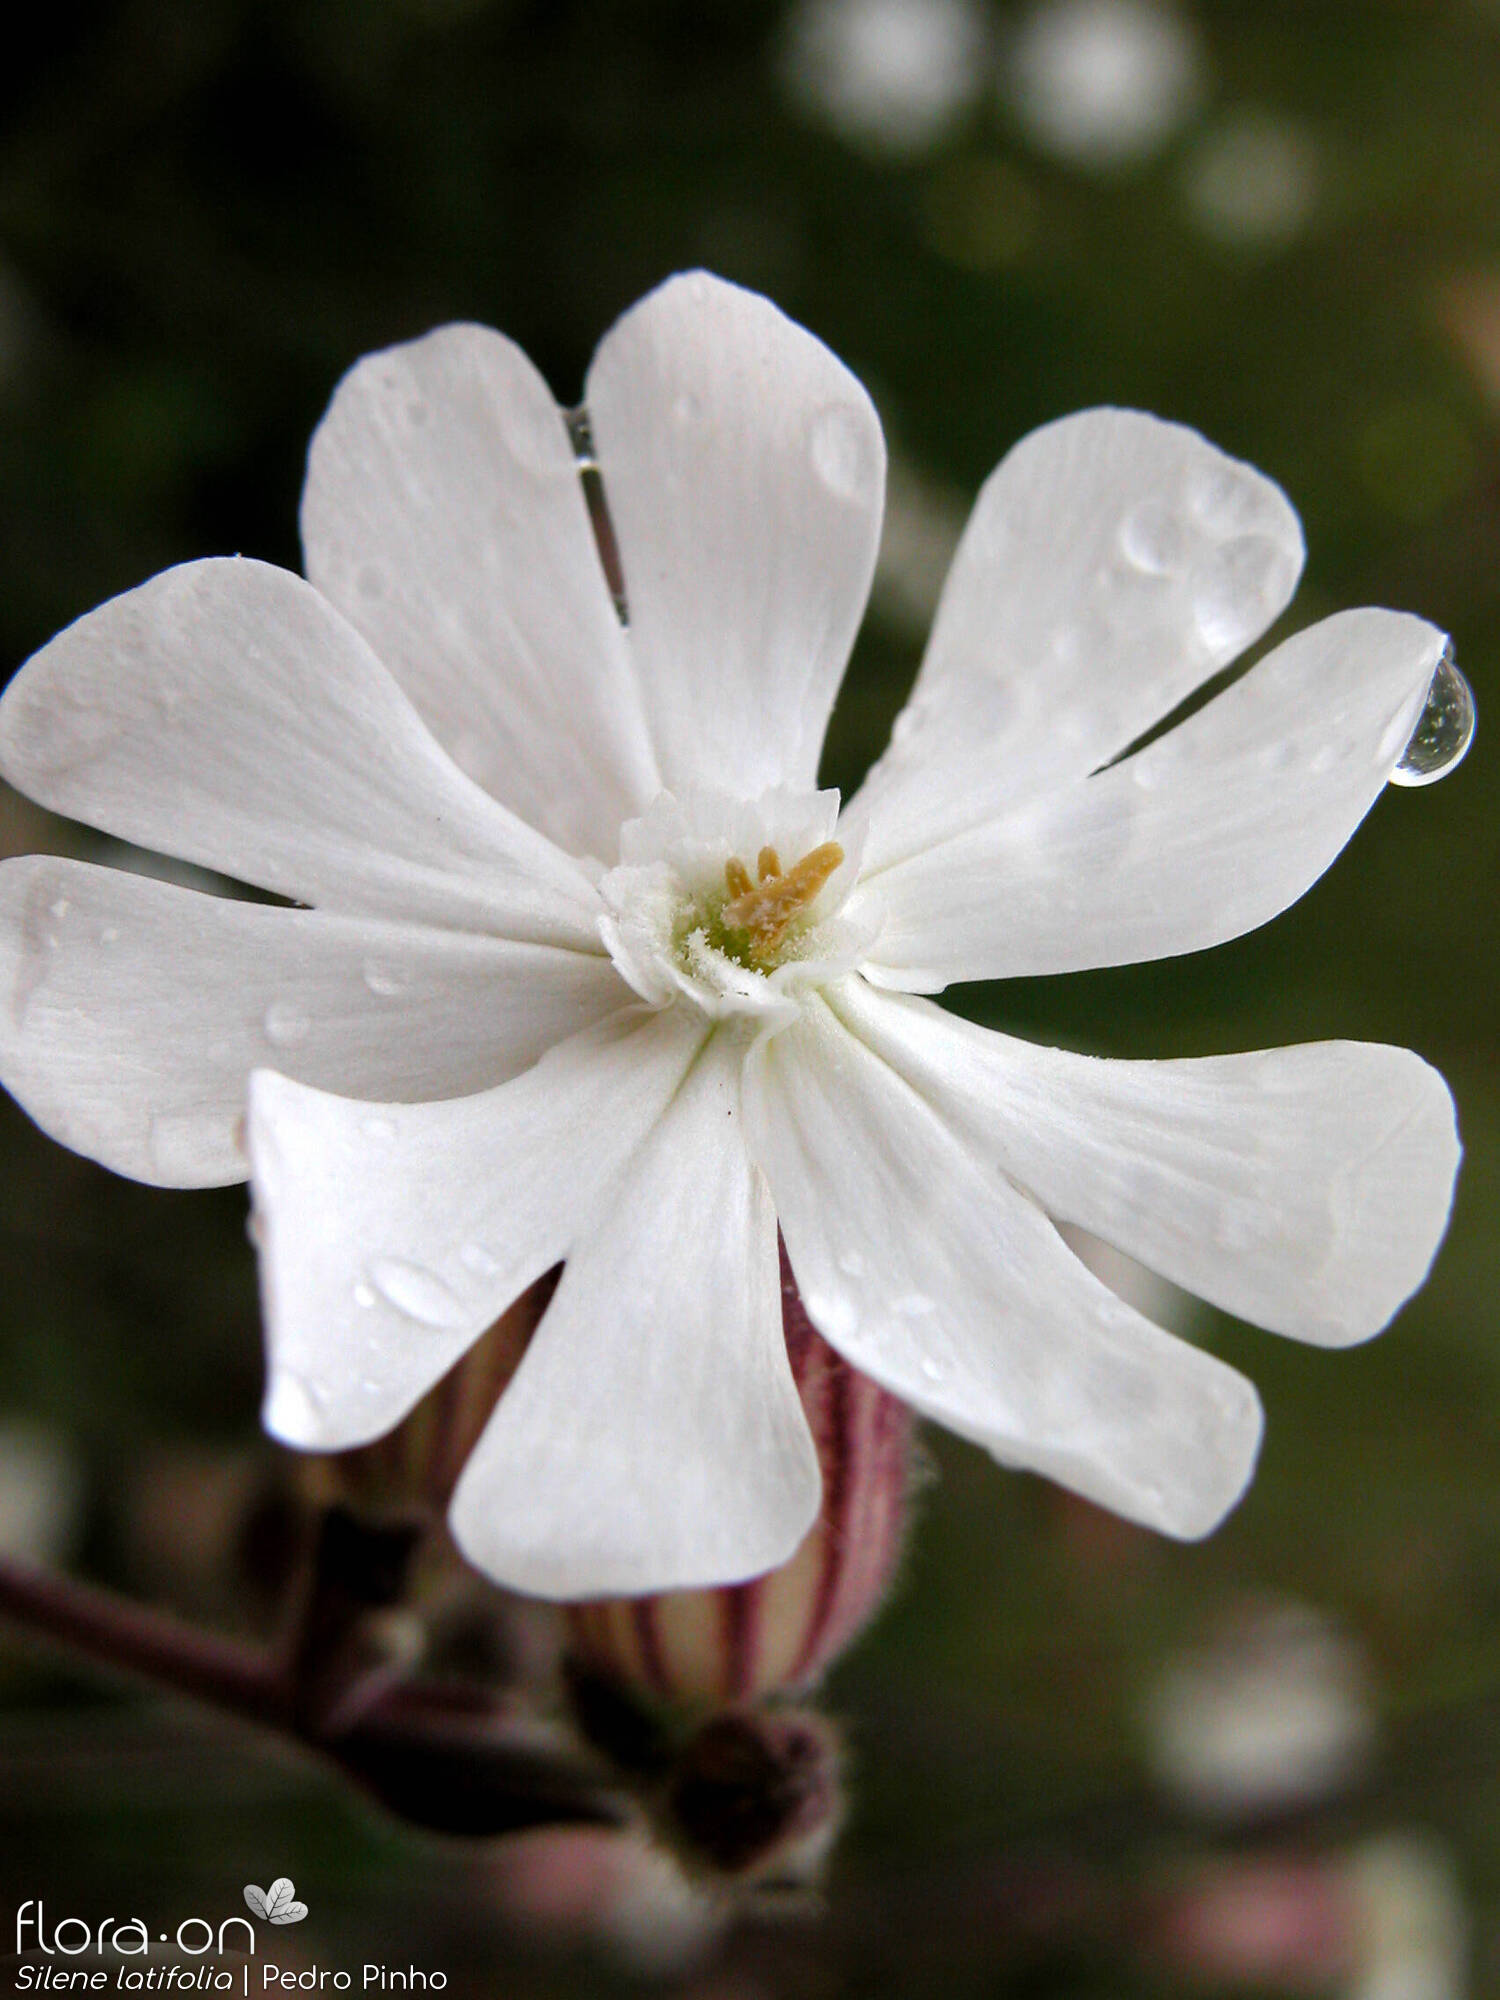 Silene latifolia - Flor (close-up) | Pedro Pinho; CC BY-NC 4.0